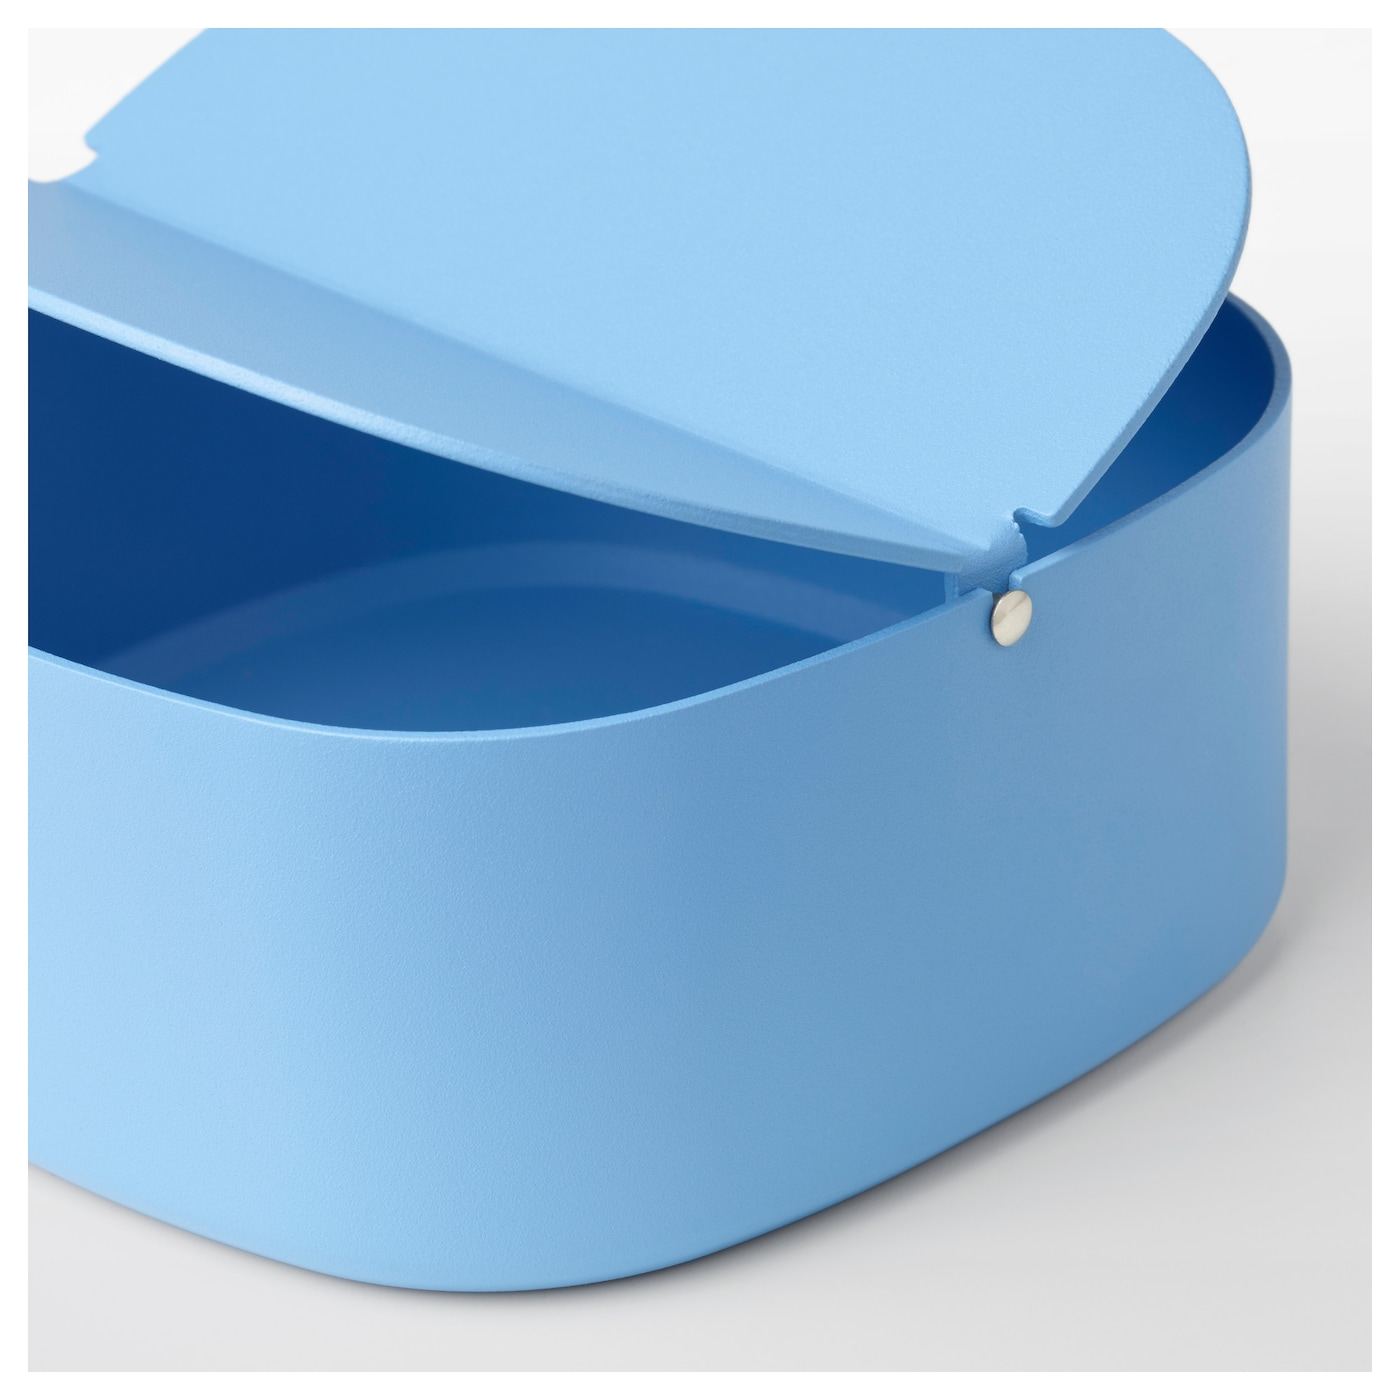 IKEA YPPERLIG box with lid Can also be used in bathrooms and other damp areas indoors.